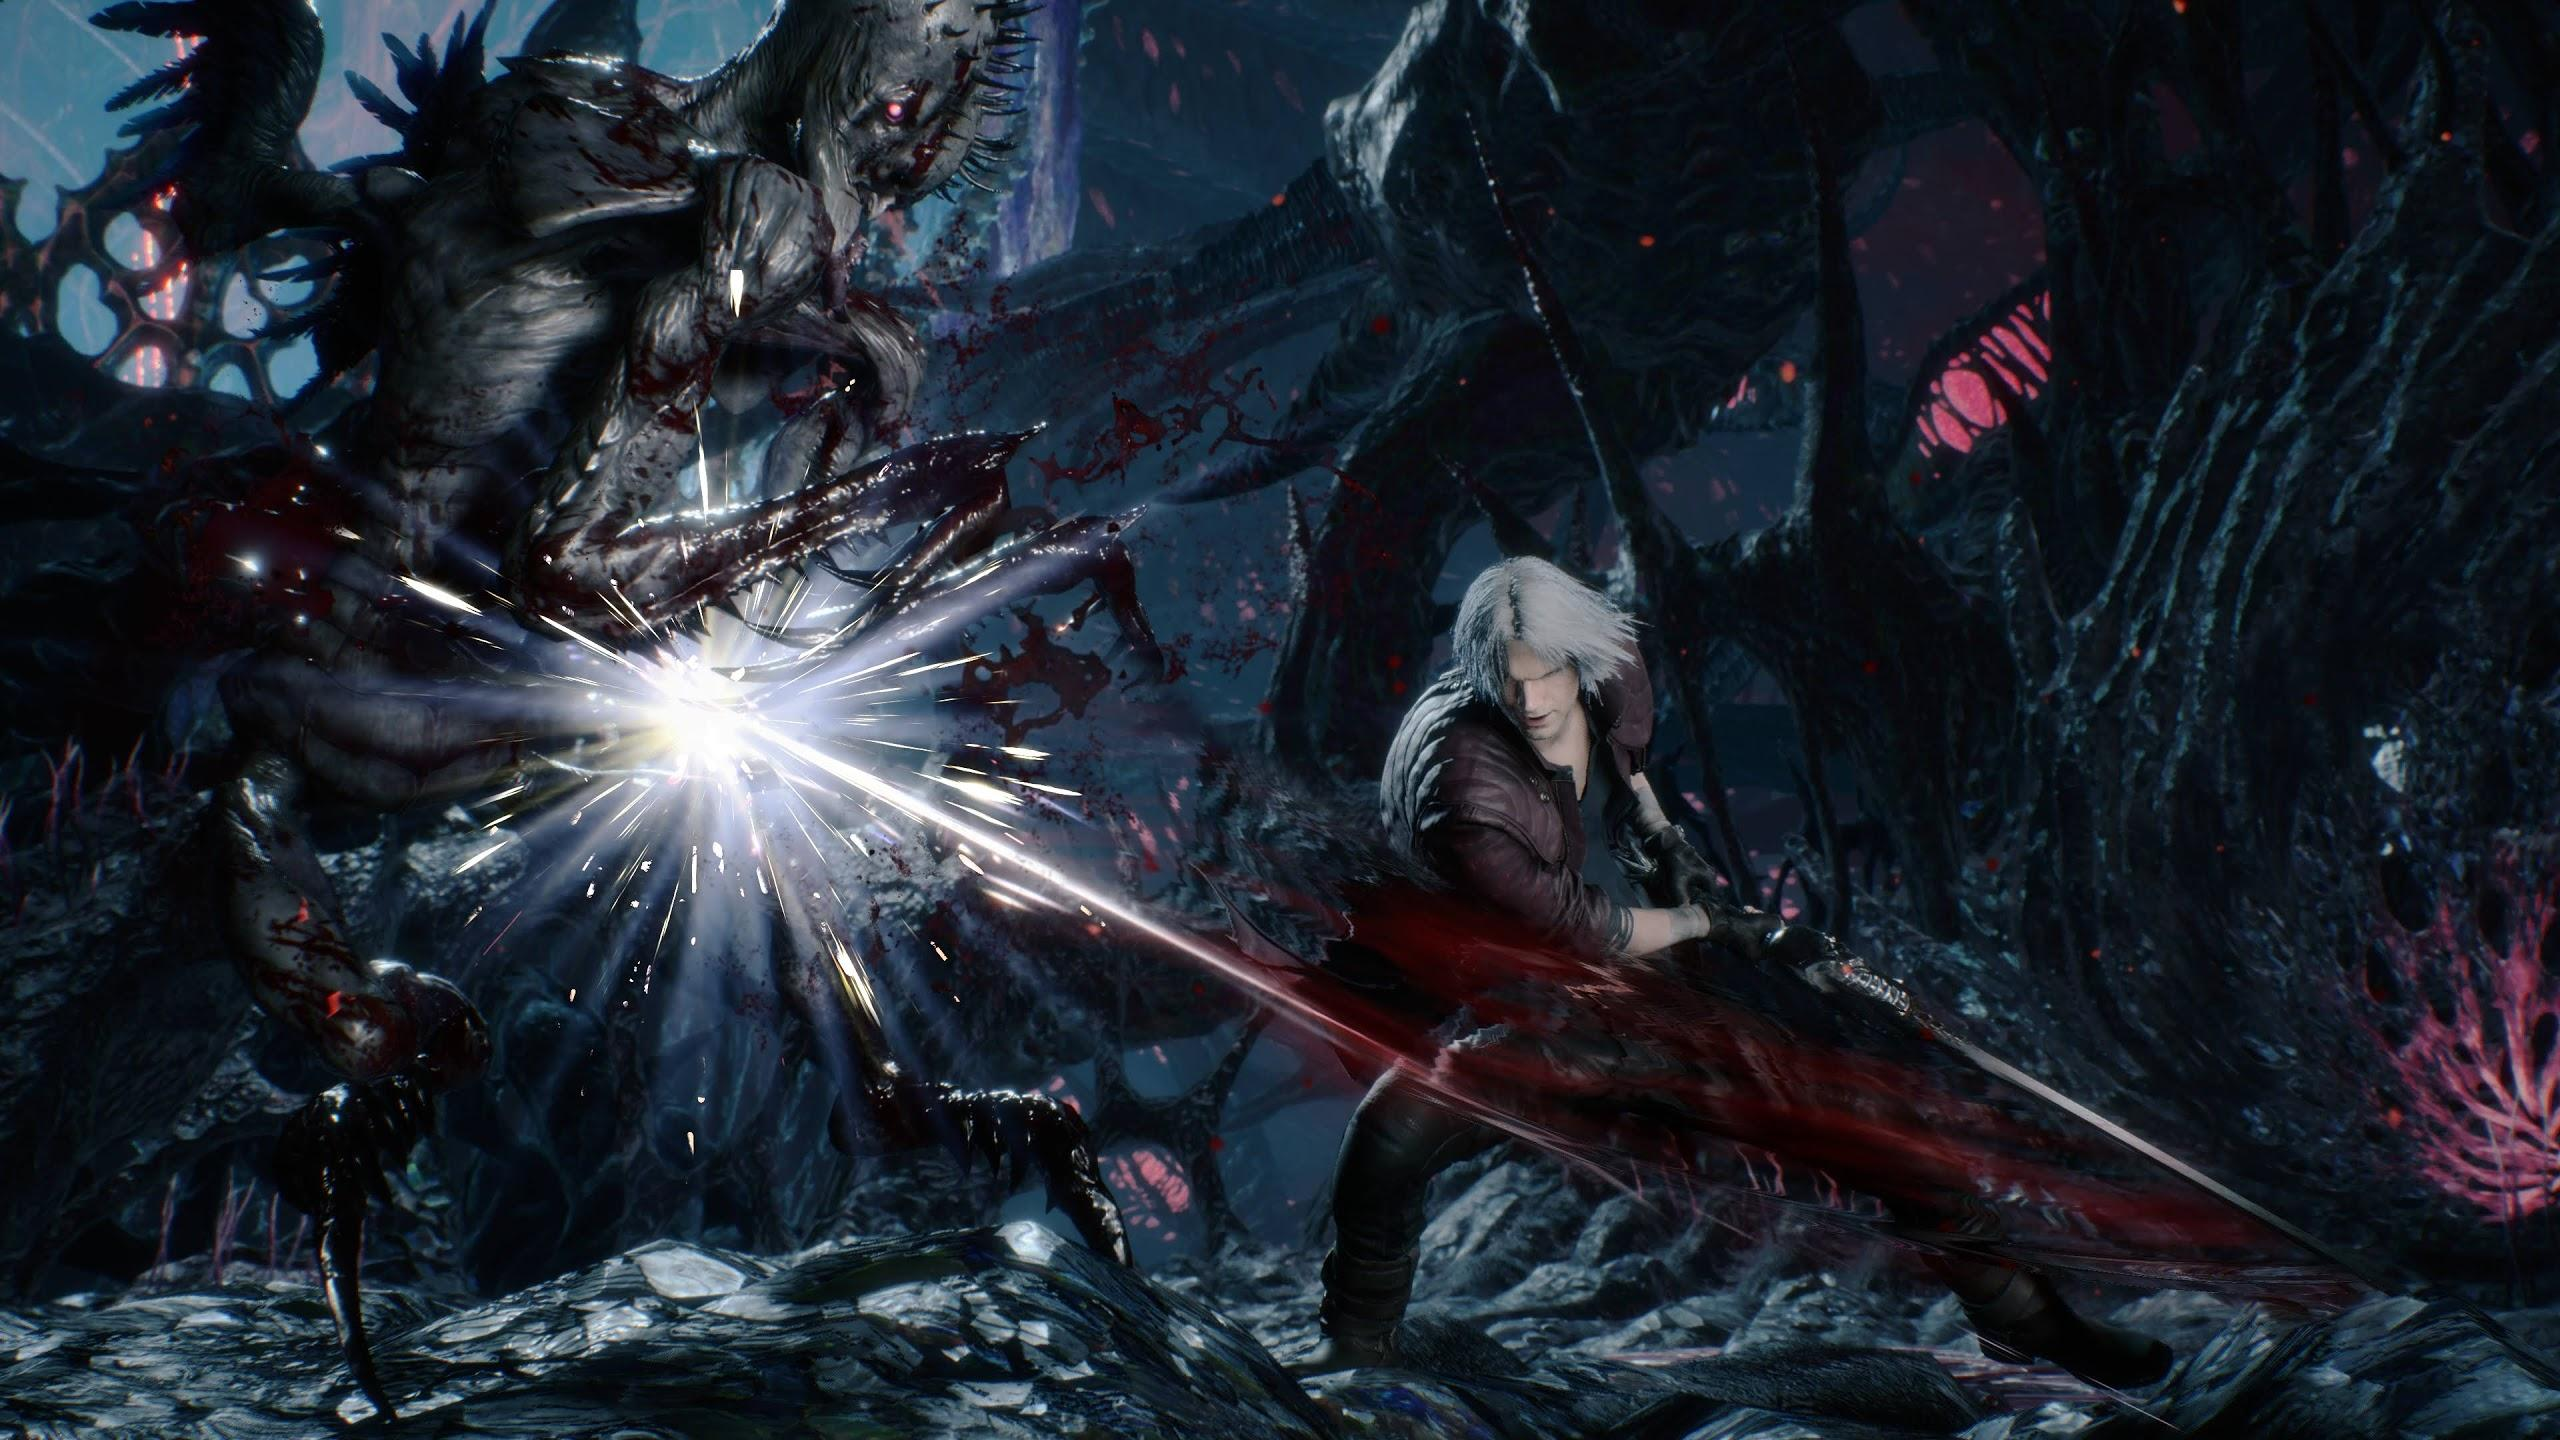 Devil May Cry 5 Hd Wallpapers Wallpaper Cave